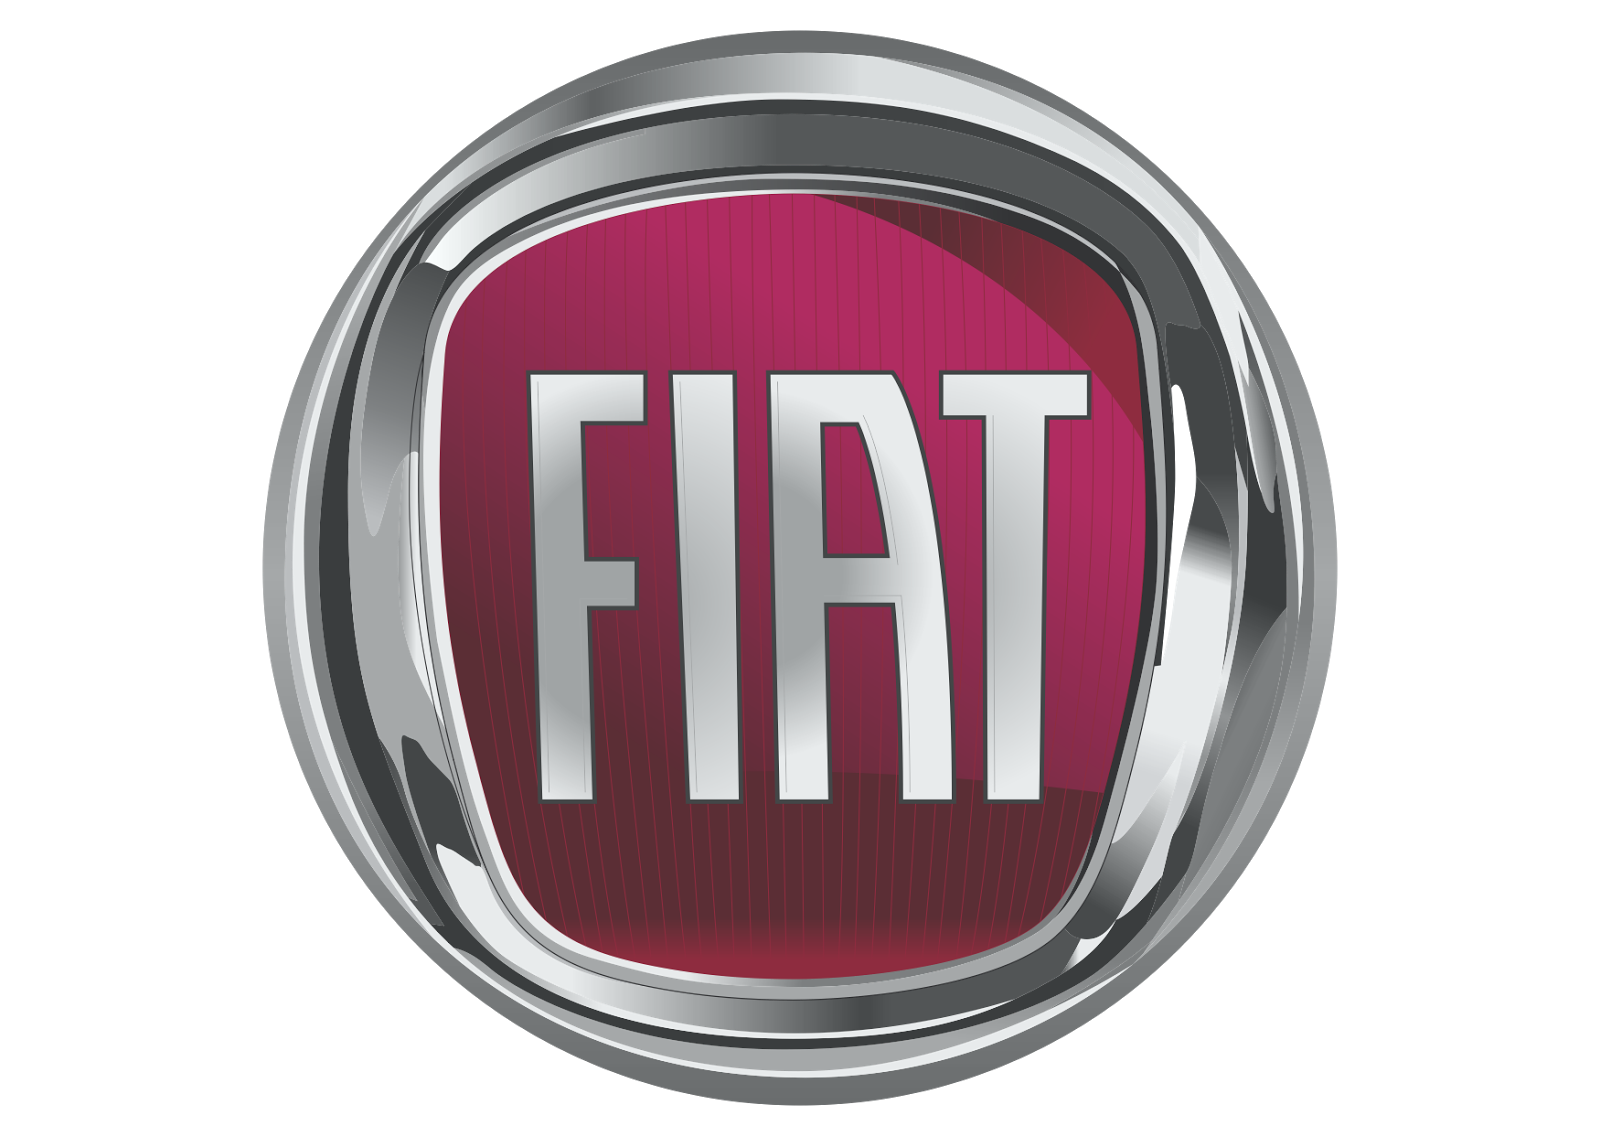 logo fiat png the image kid has it. Black Bedroom Furniture Sets. Home Design Ideas